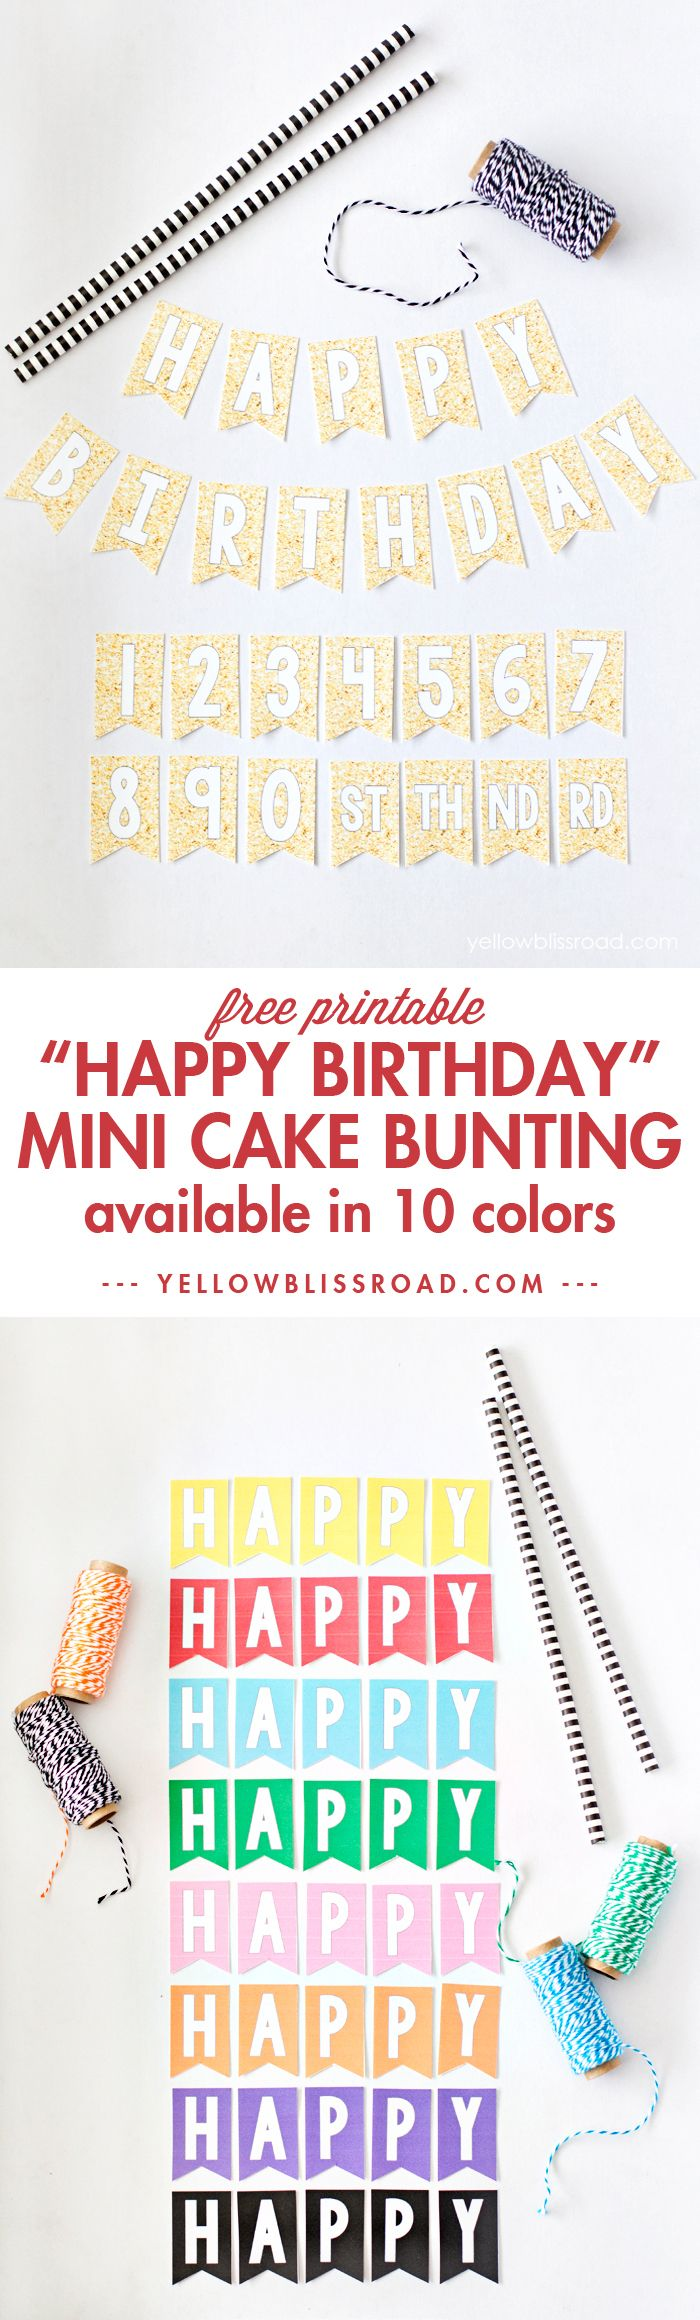 free printable mini birthday bunting best of pinterest birthday bunting happy birthday cake. Black Bedroom Furniture Sets. Home Design Ideas